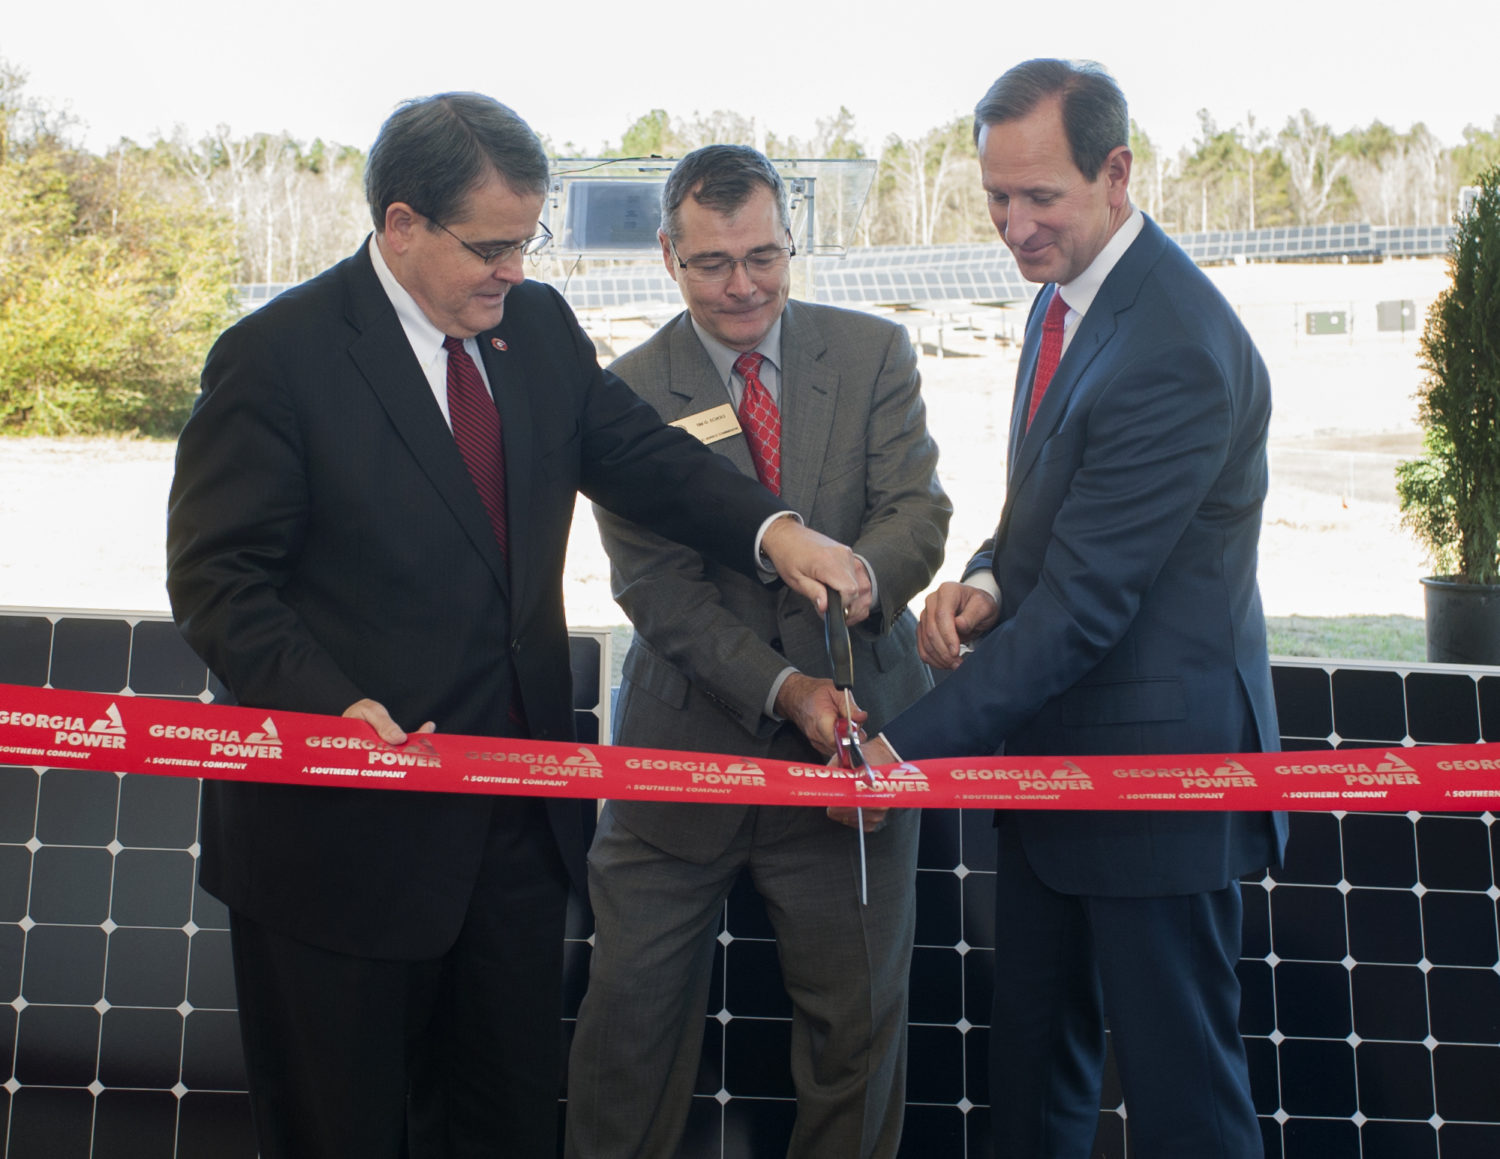 UGA/GA Power Ribbon Cutting